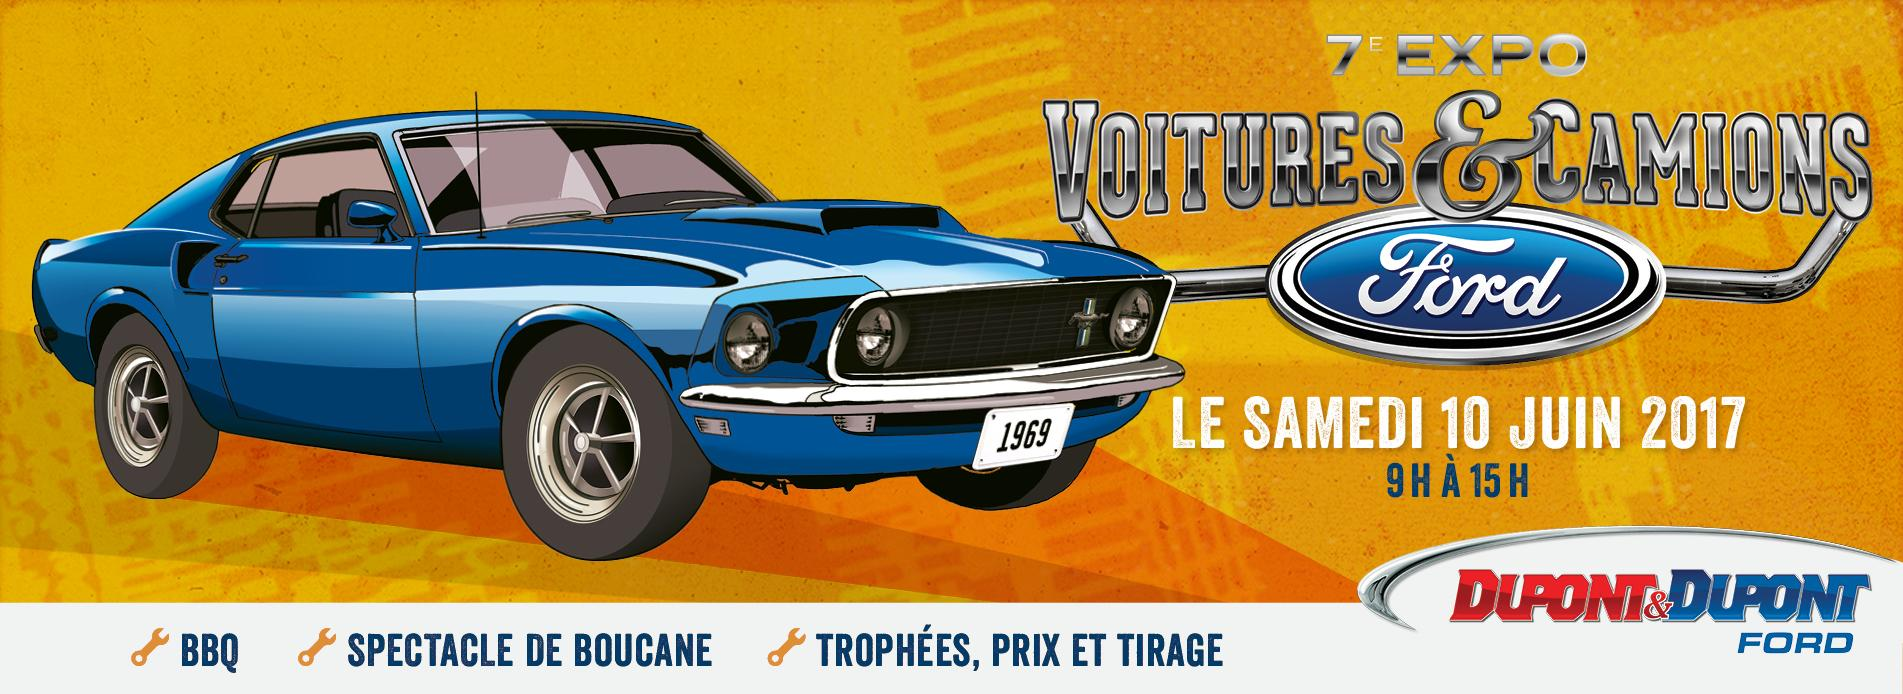 expo ford 2017 club mustang gatineau